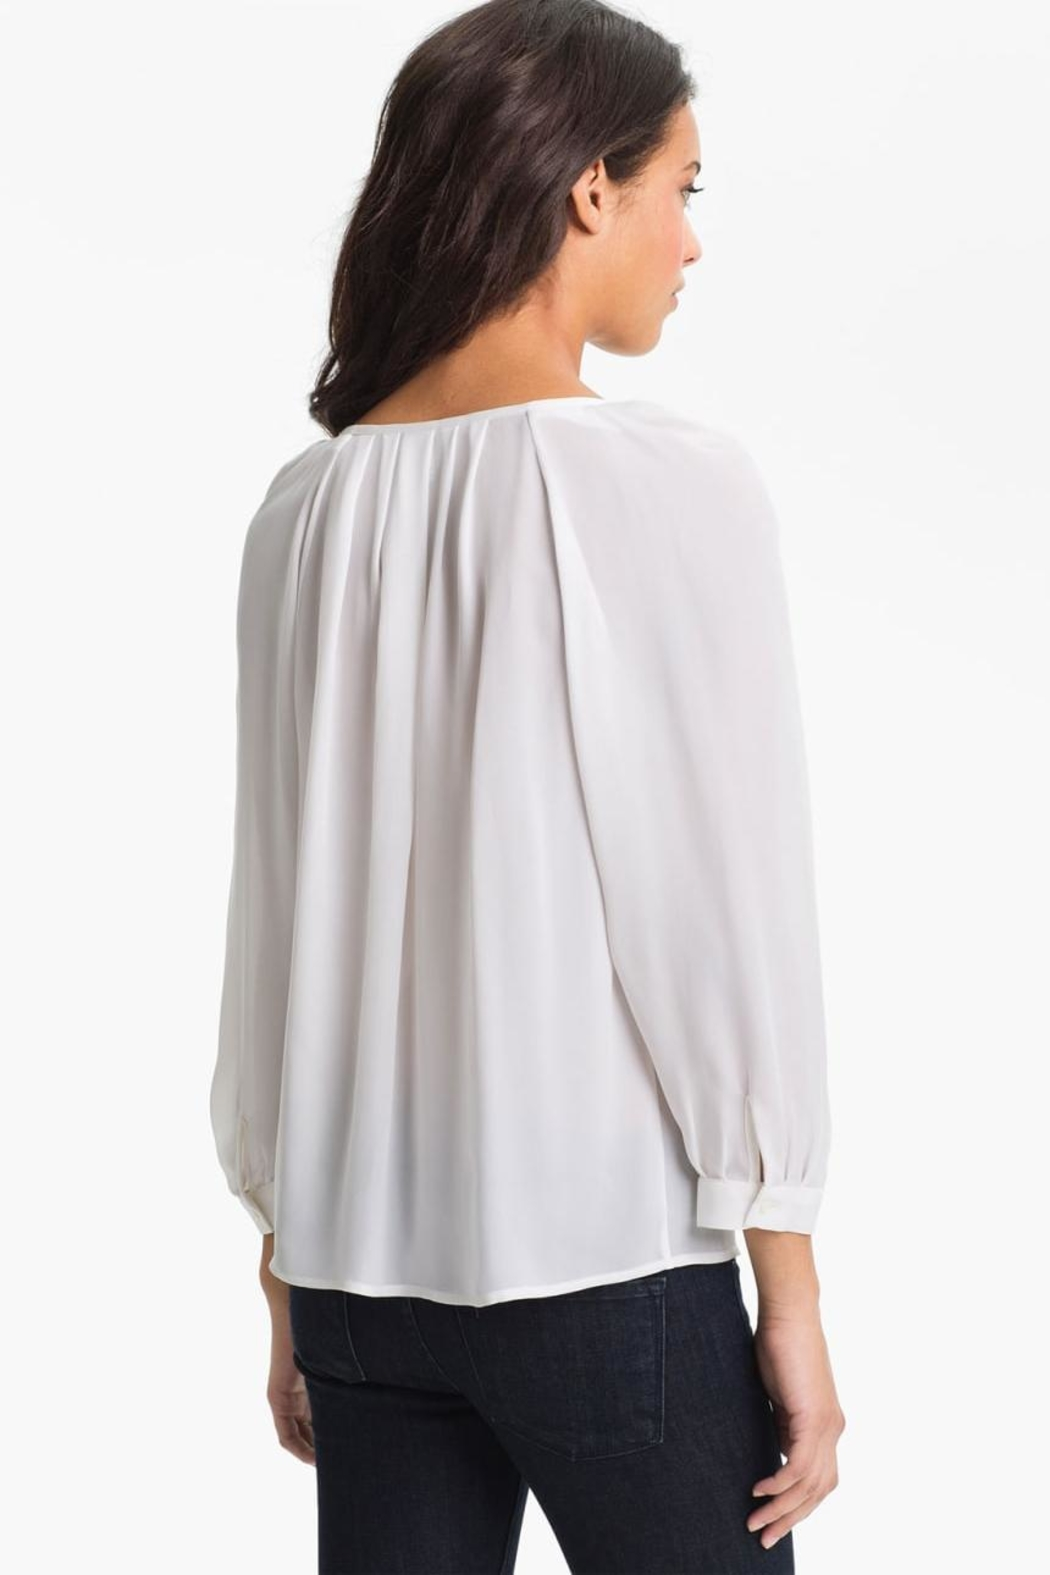 Joie Devin Blouse - Back Cropped Image